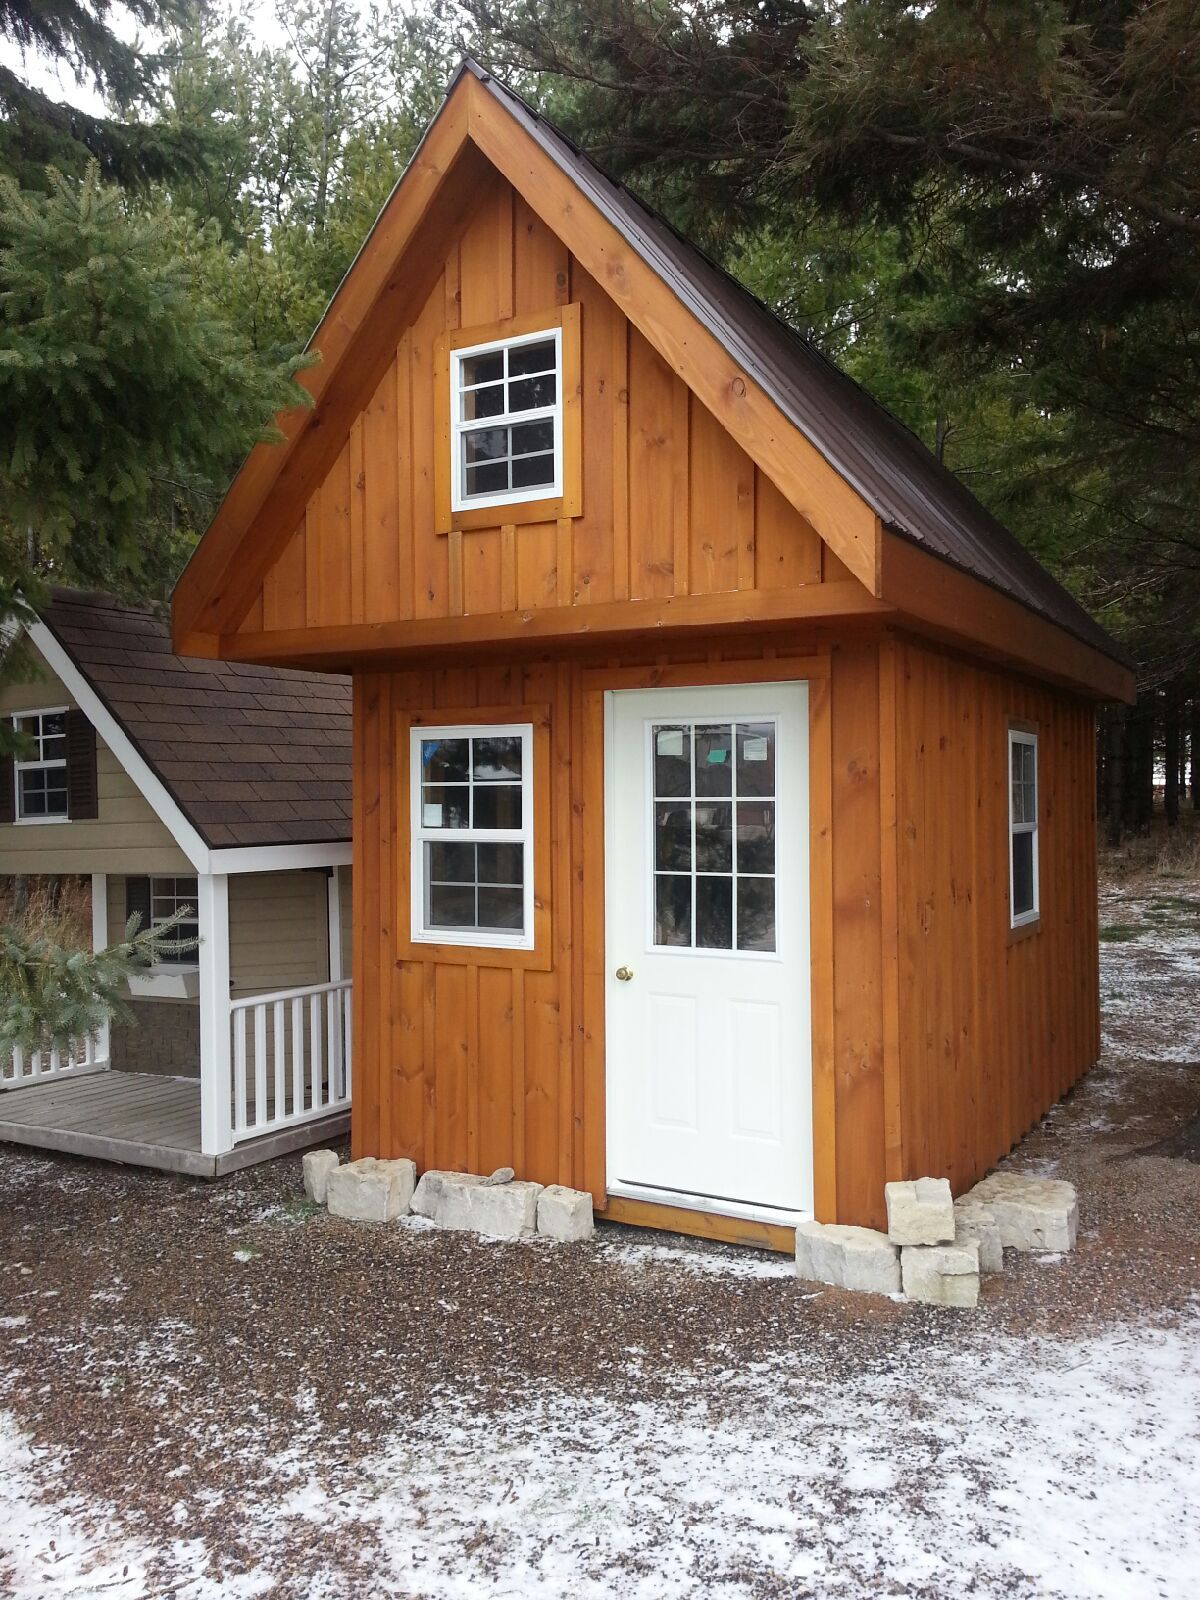 Canadian bunkie fuller loft and ladder at read ontario